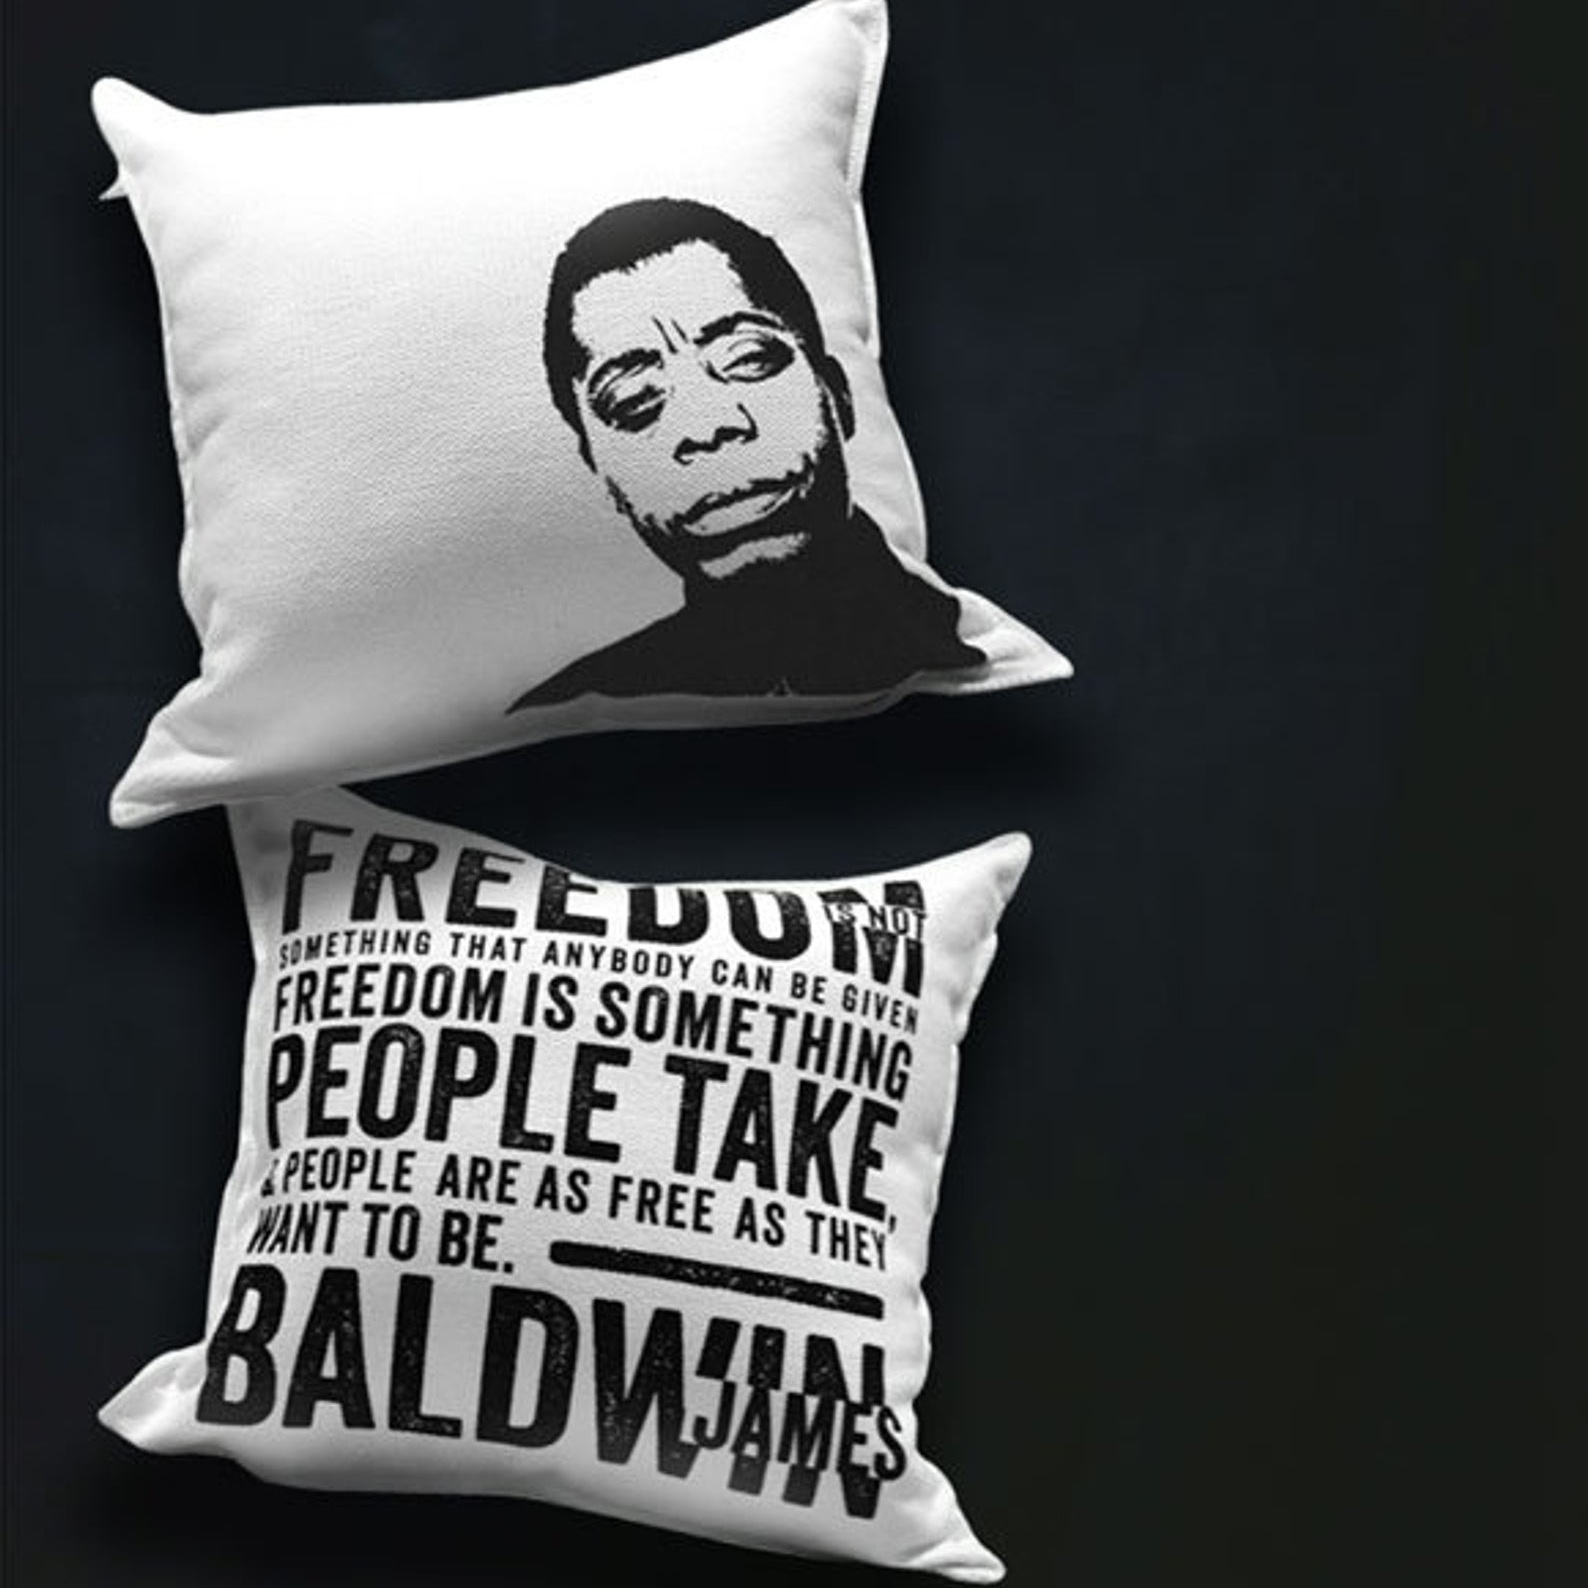 James+Baldwin+Pillow+Dont+Sleep+Interiors.jpg